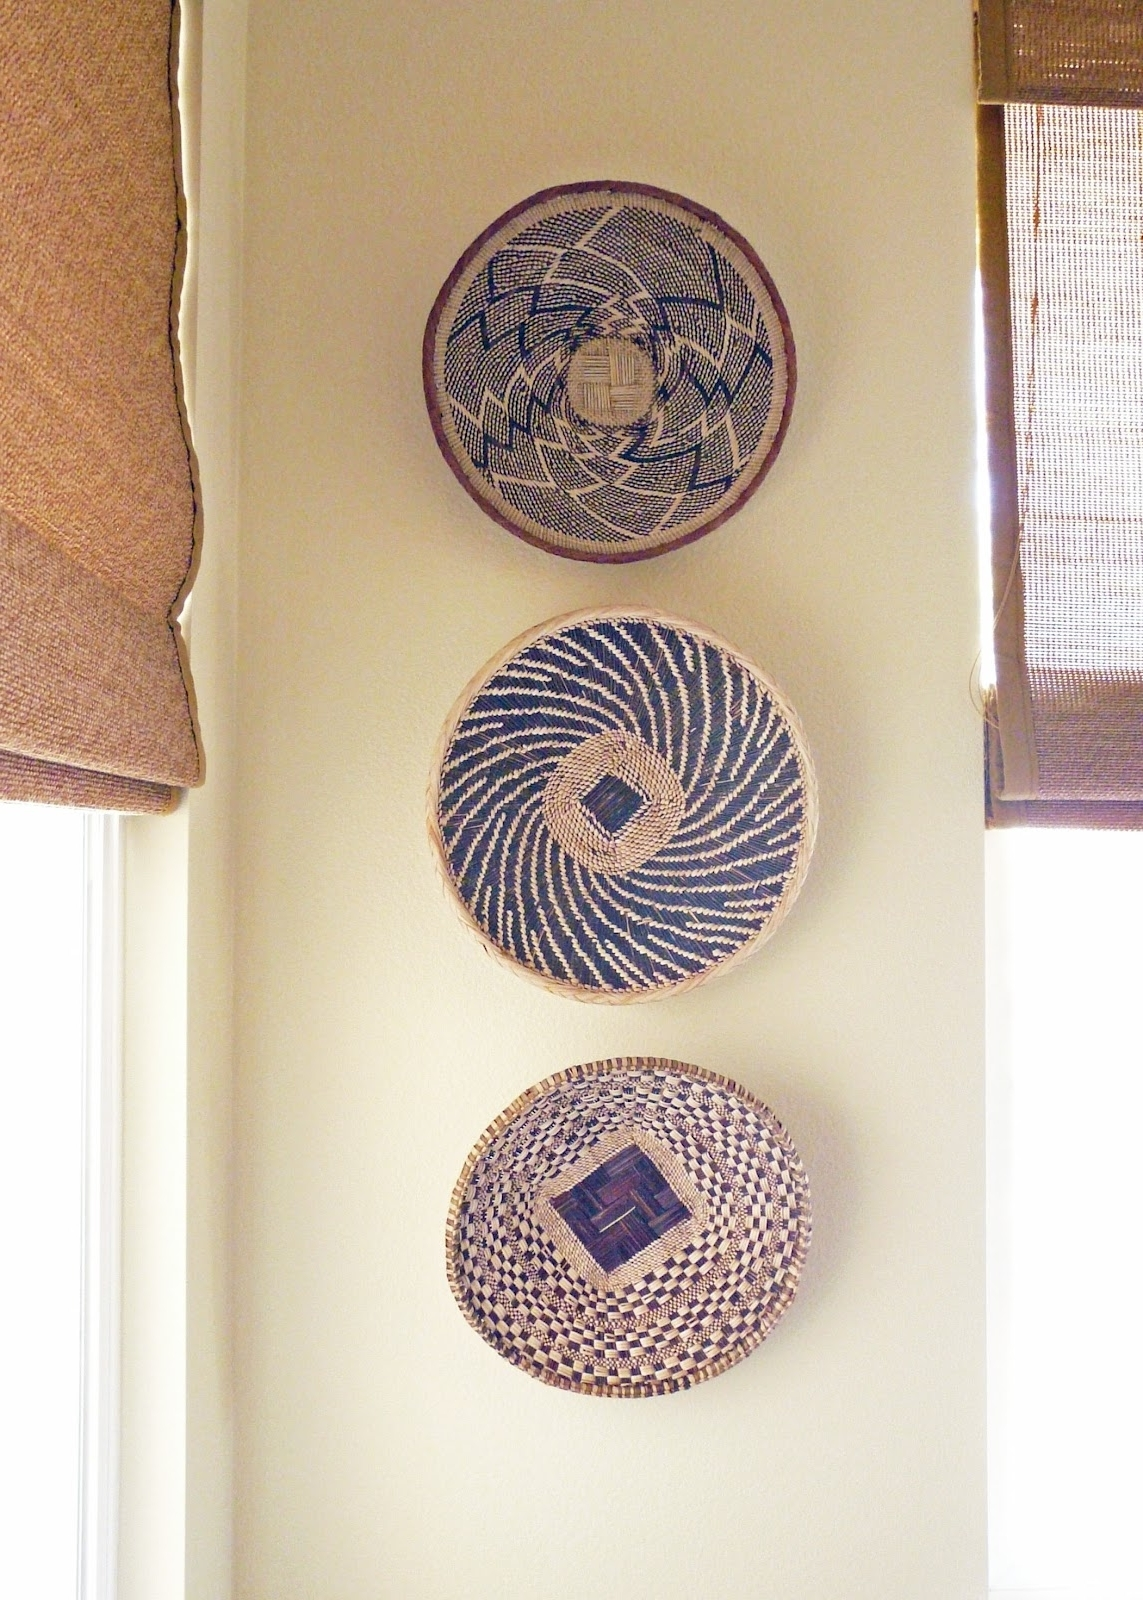 [%Home] African Basket Wall Decor With Regard To Latest African Wall Art|African Wall Art Pertaining To 2018 Home] African Basket Wall Decor|Current African Wall Art Within Home] African Basket Wall Decor|Favorite Home] African Basket Wall Decor With African Wall Art%] (View 1 of 15)